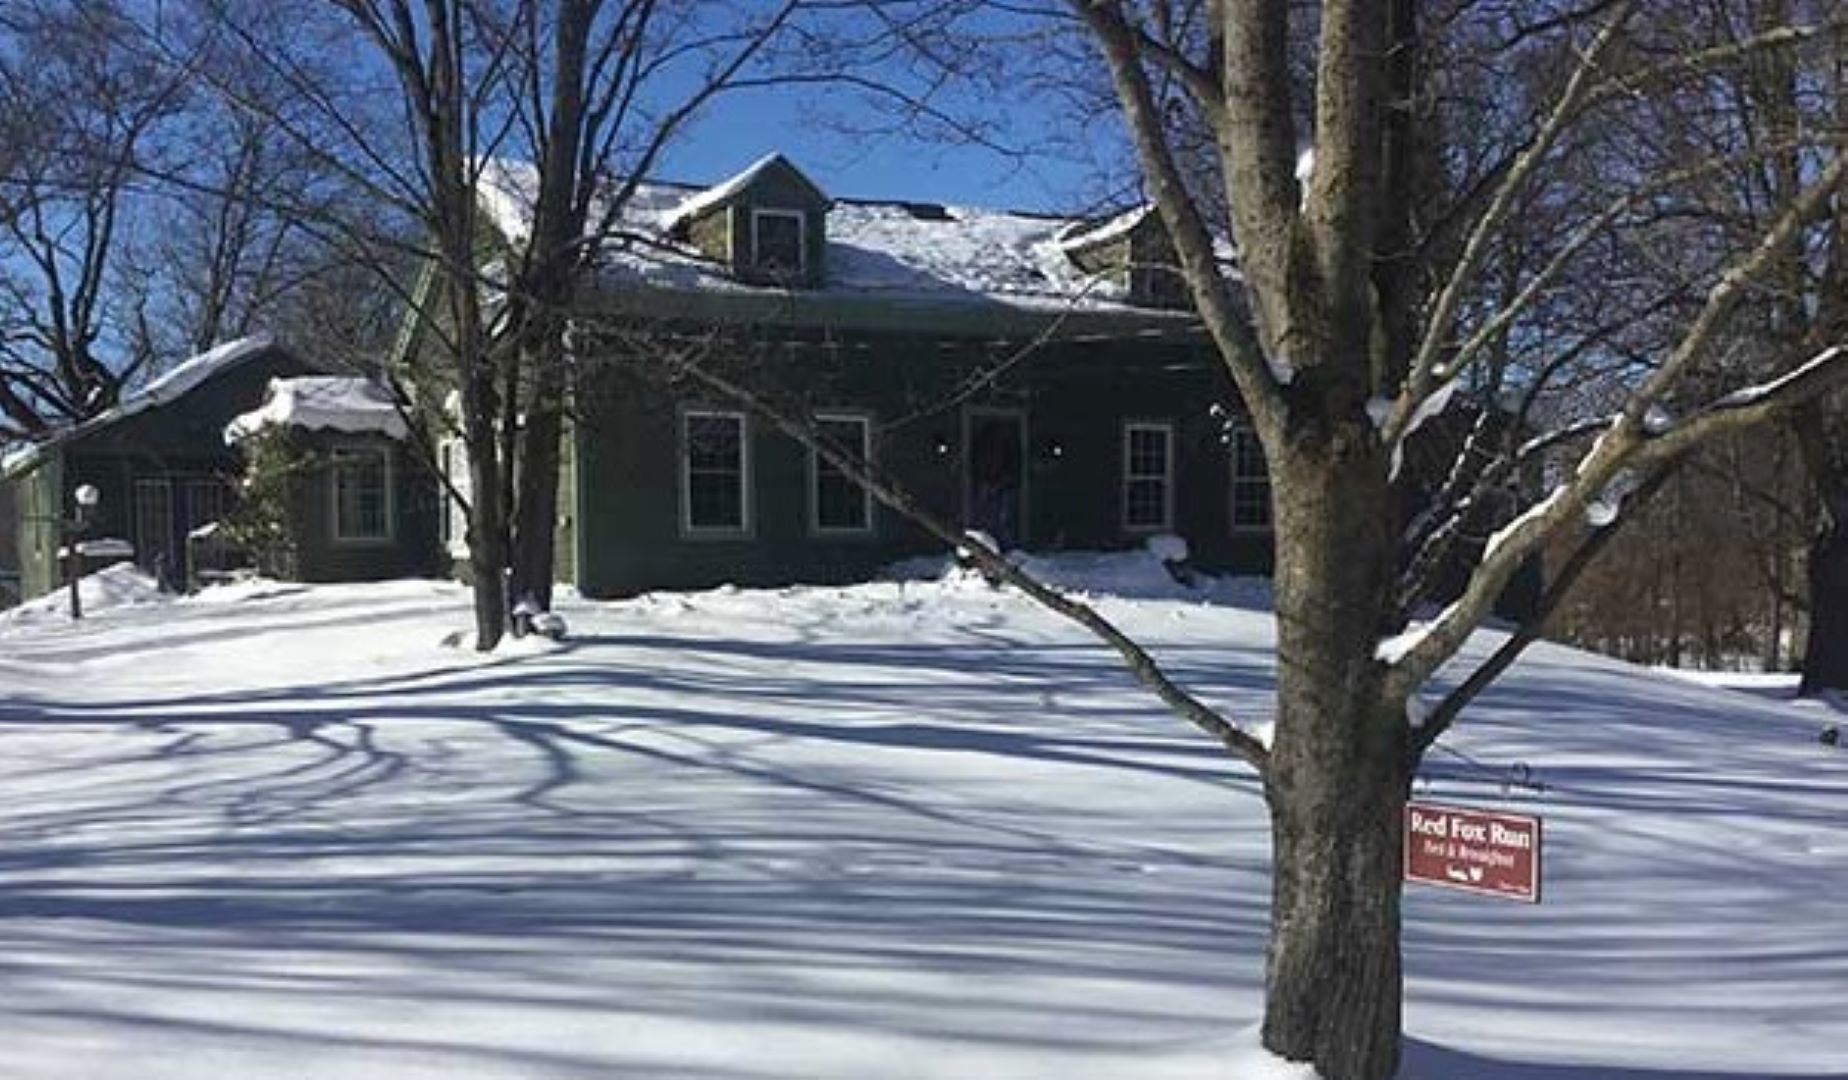 A house covered in snow at Red Fox Run Bed & Breakfast.